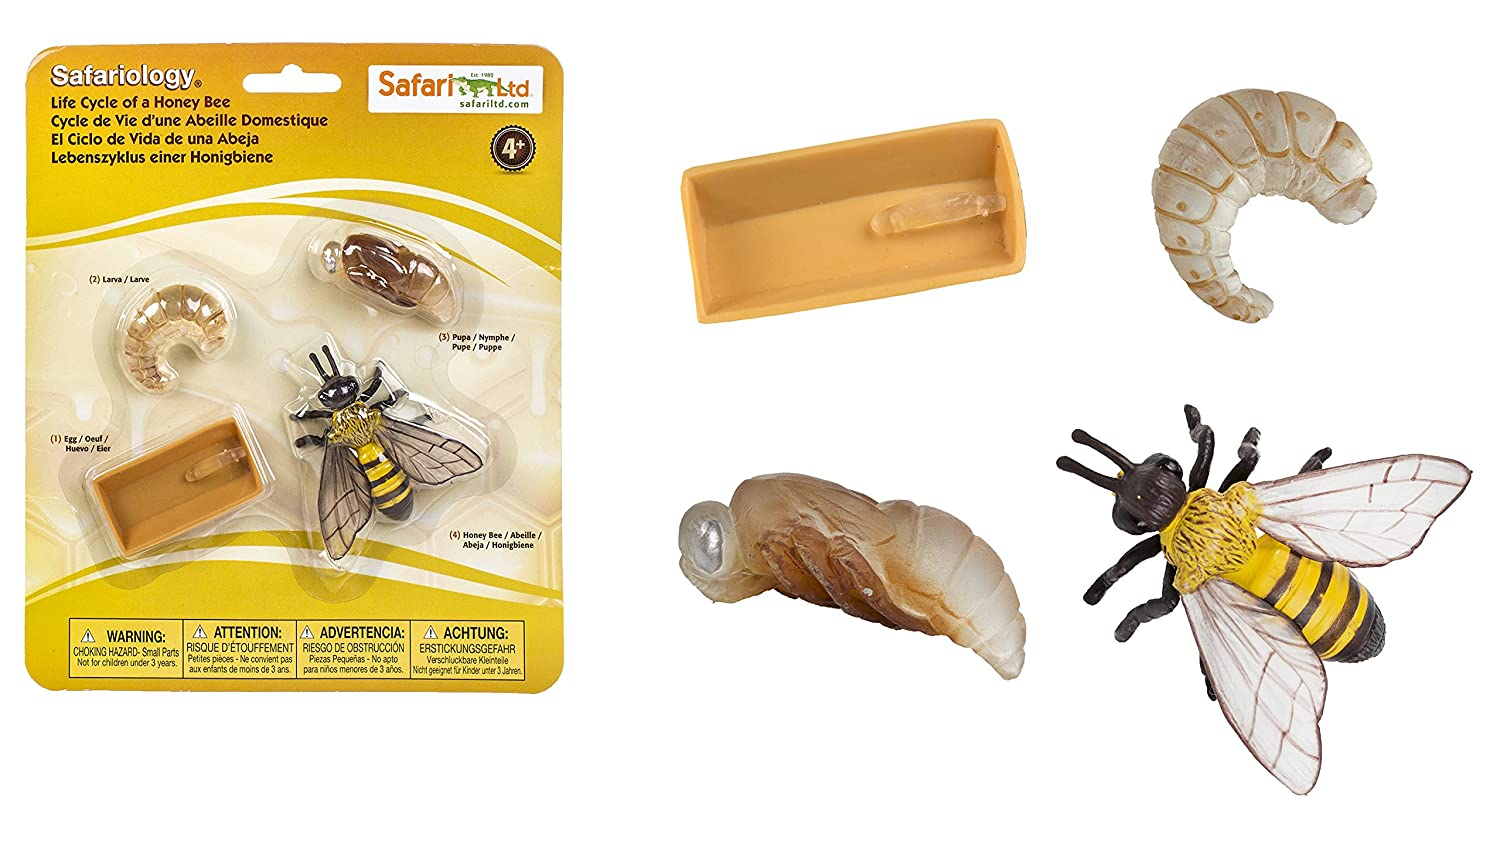 life cycle of a honey be figurines figures